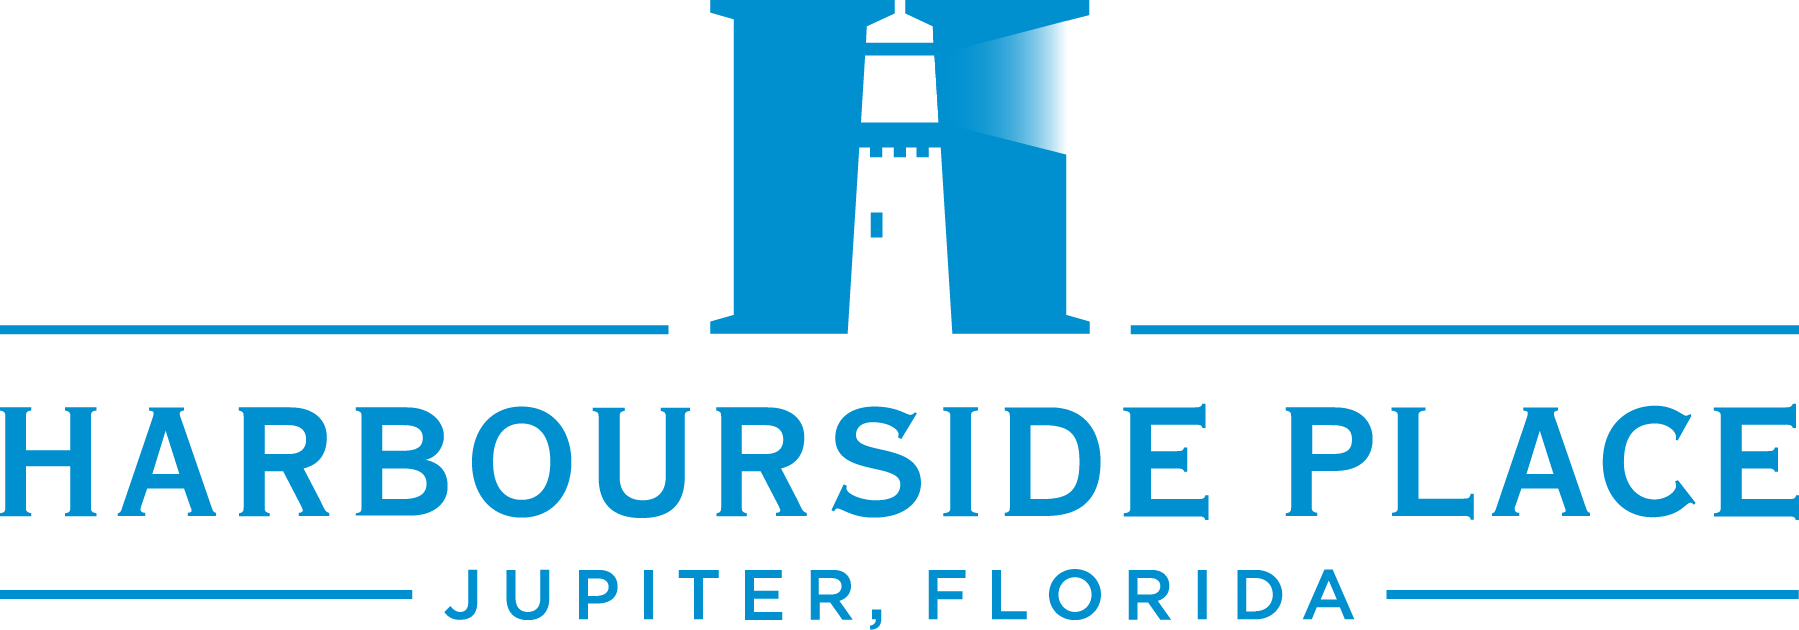 Harbourside-Place-Logo-blue-01